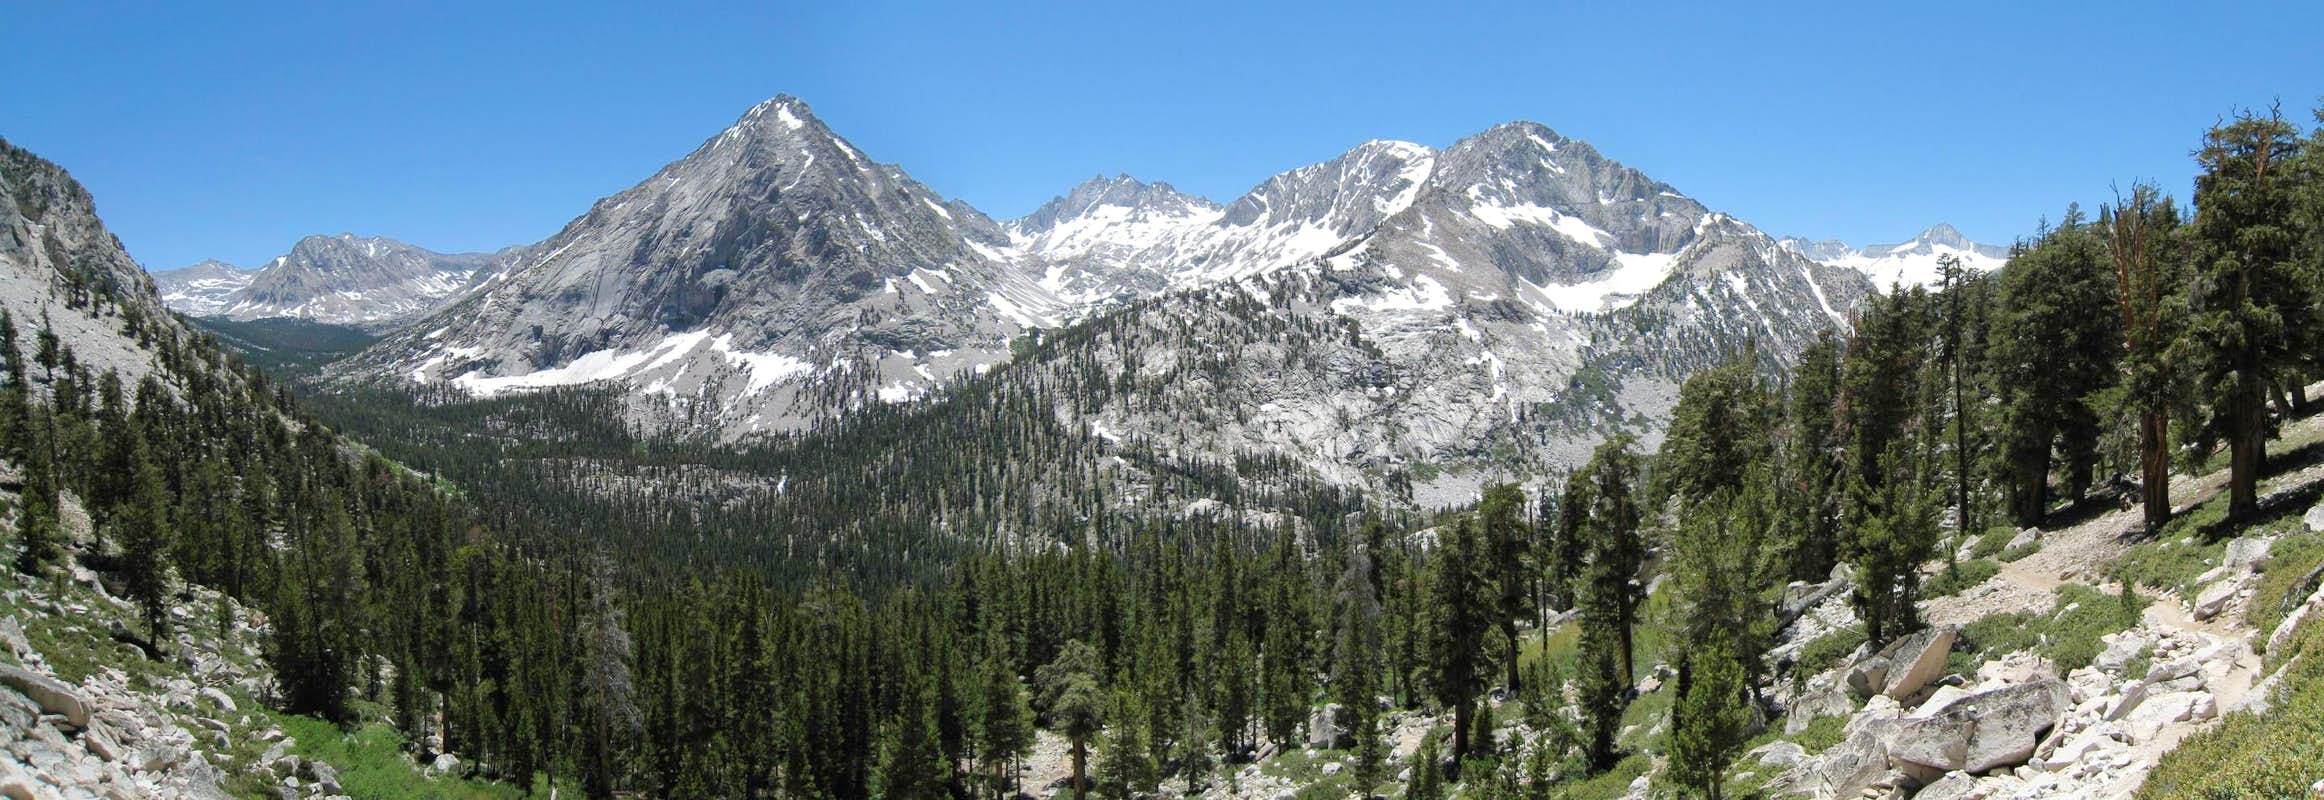 Vidette Canyon from the JMT